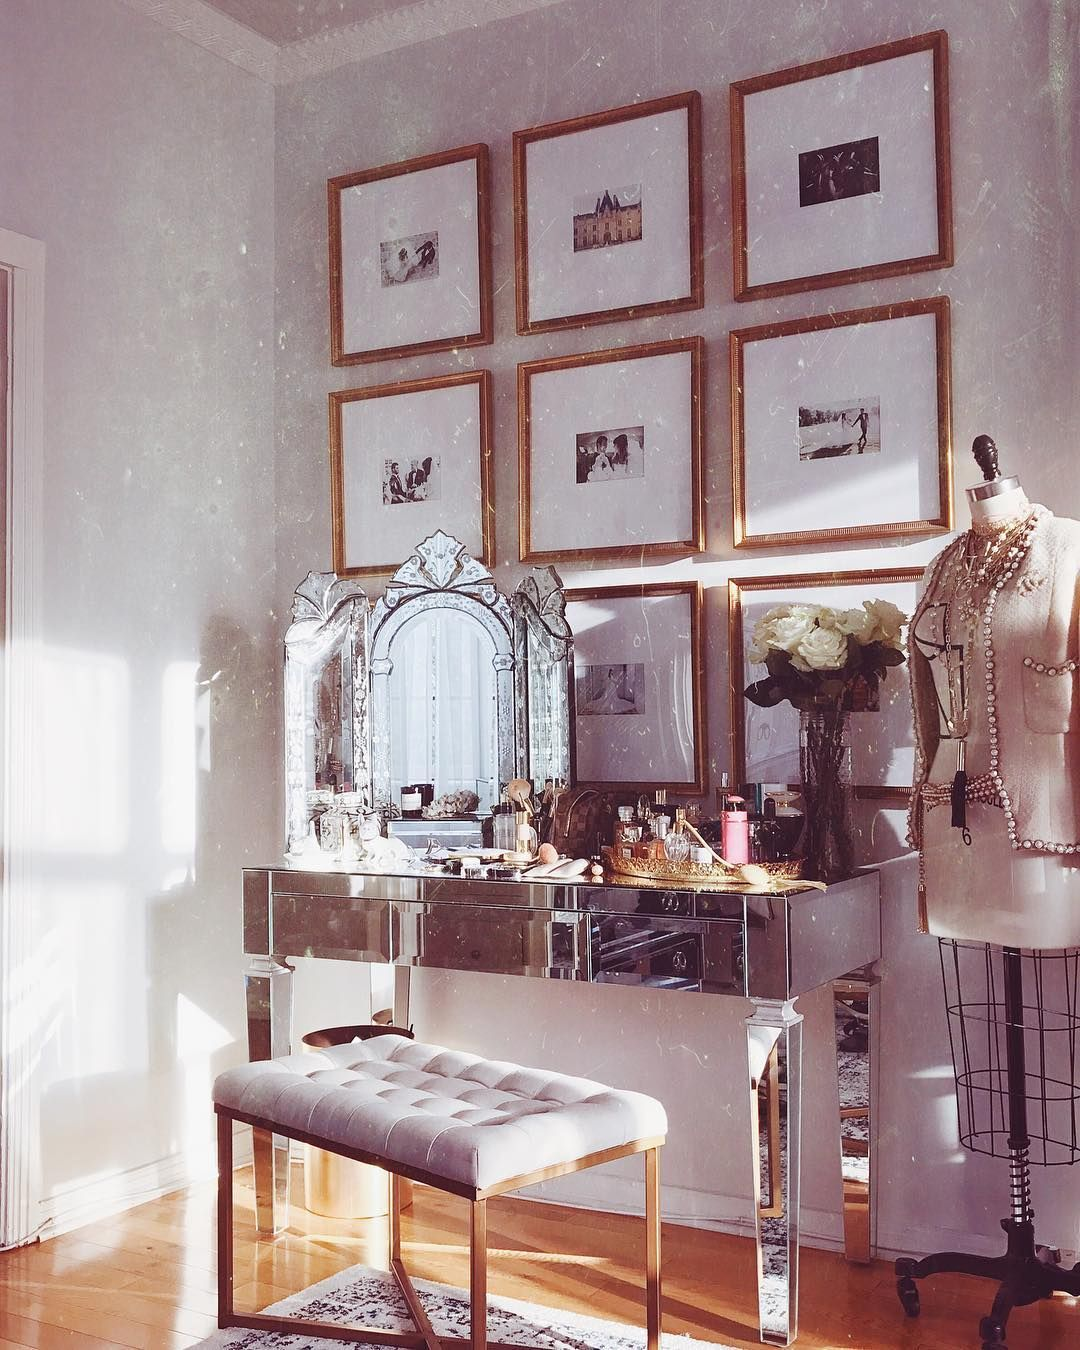 Master bedroom gallery wall   Followers  Following  Posts  See Instagram photos